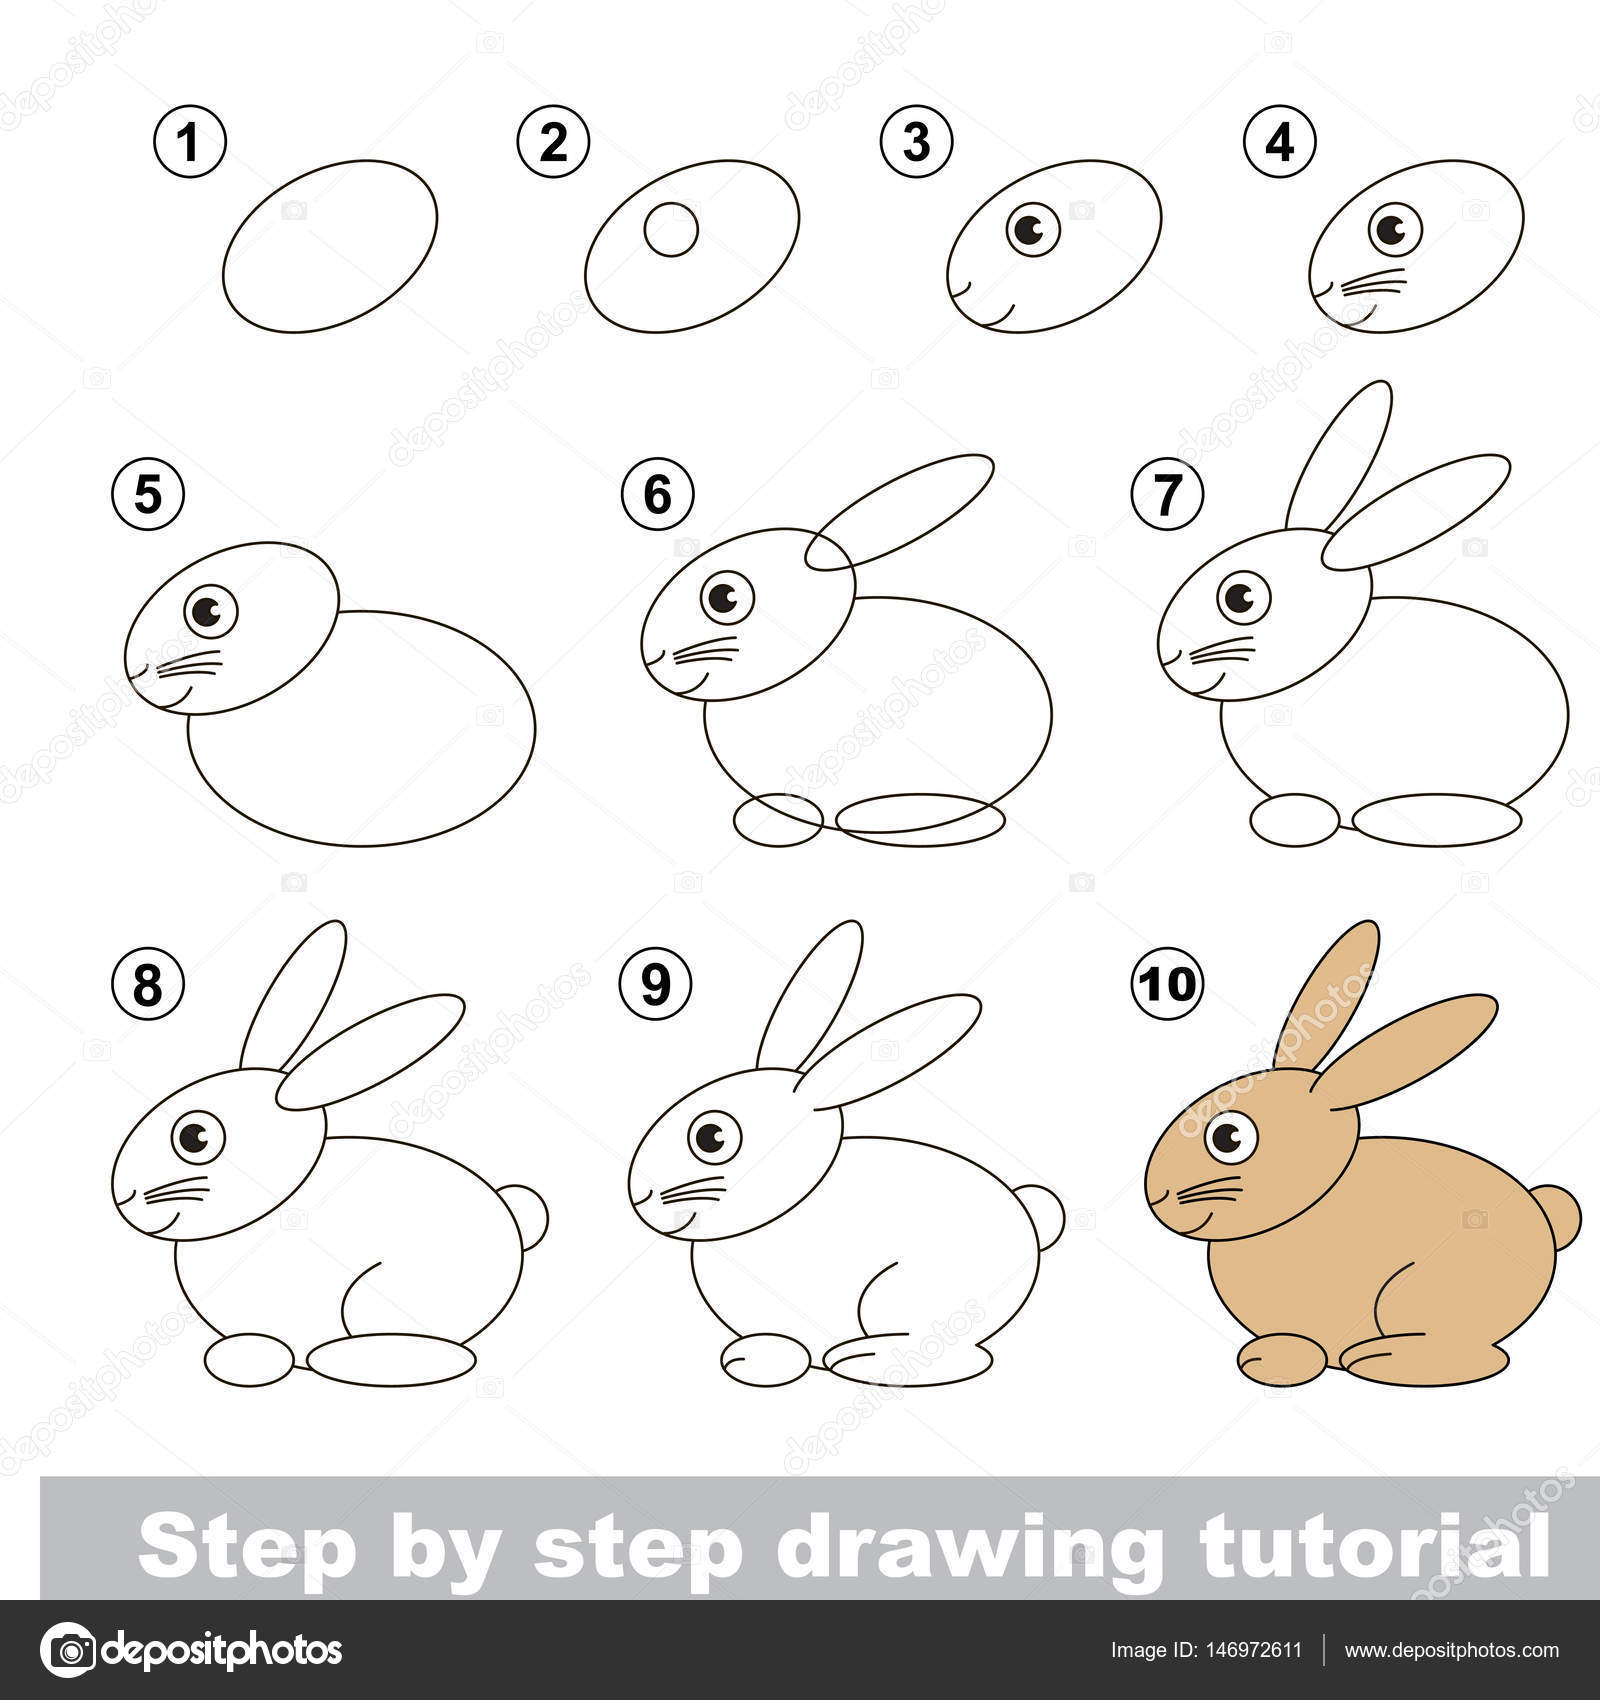 Vector kid educational game to develop drawing skill with easy game level preschool kids education funny drawing school drawing tutorial for rabbit